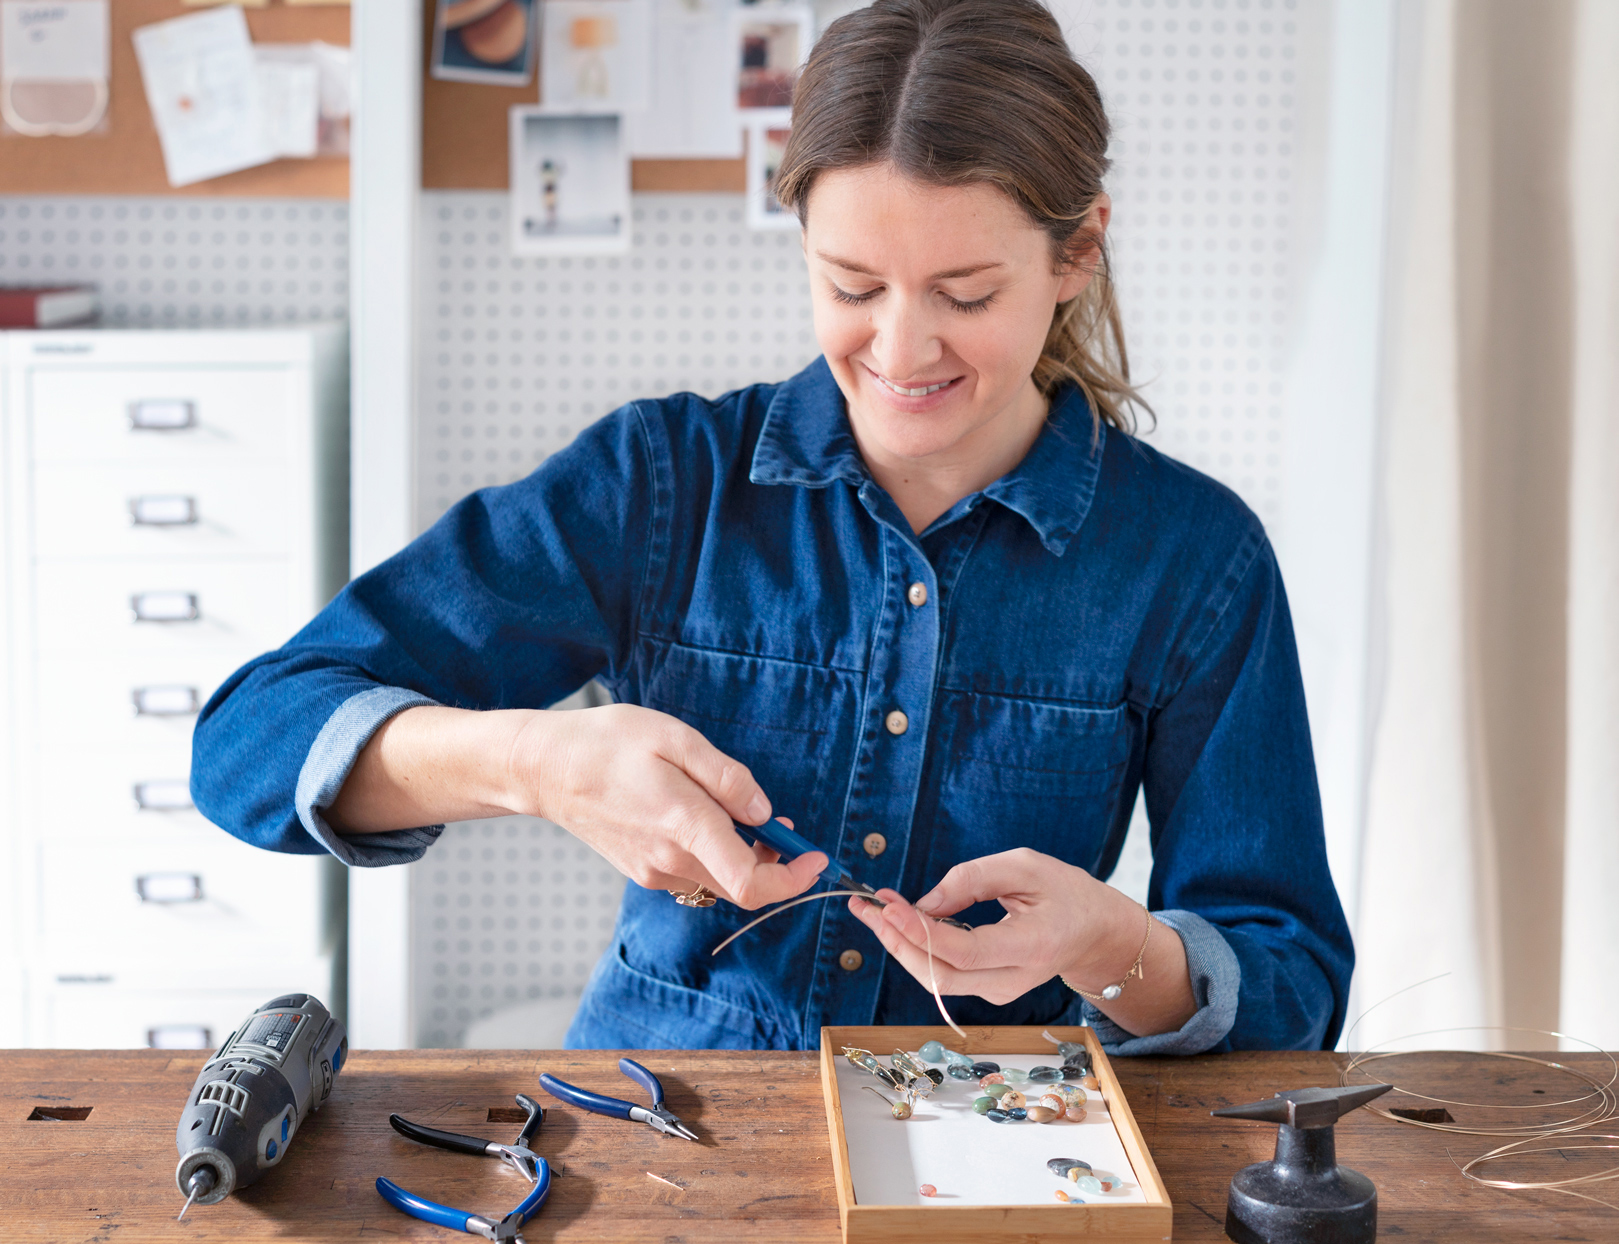 mary macgill making jewelry in store studio space